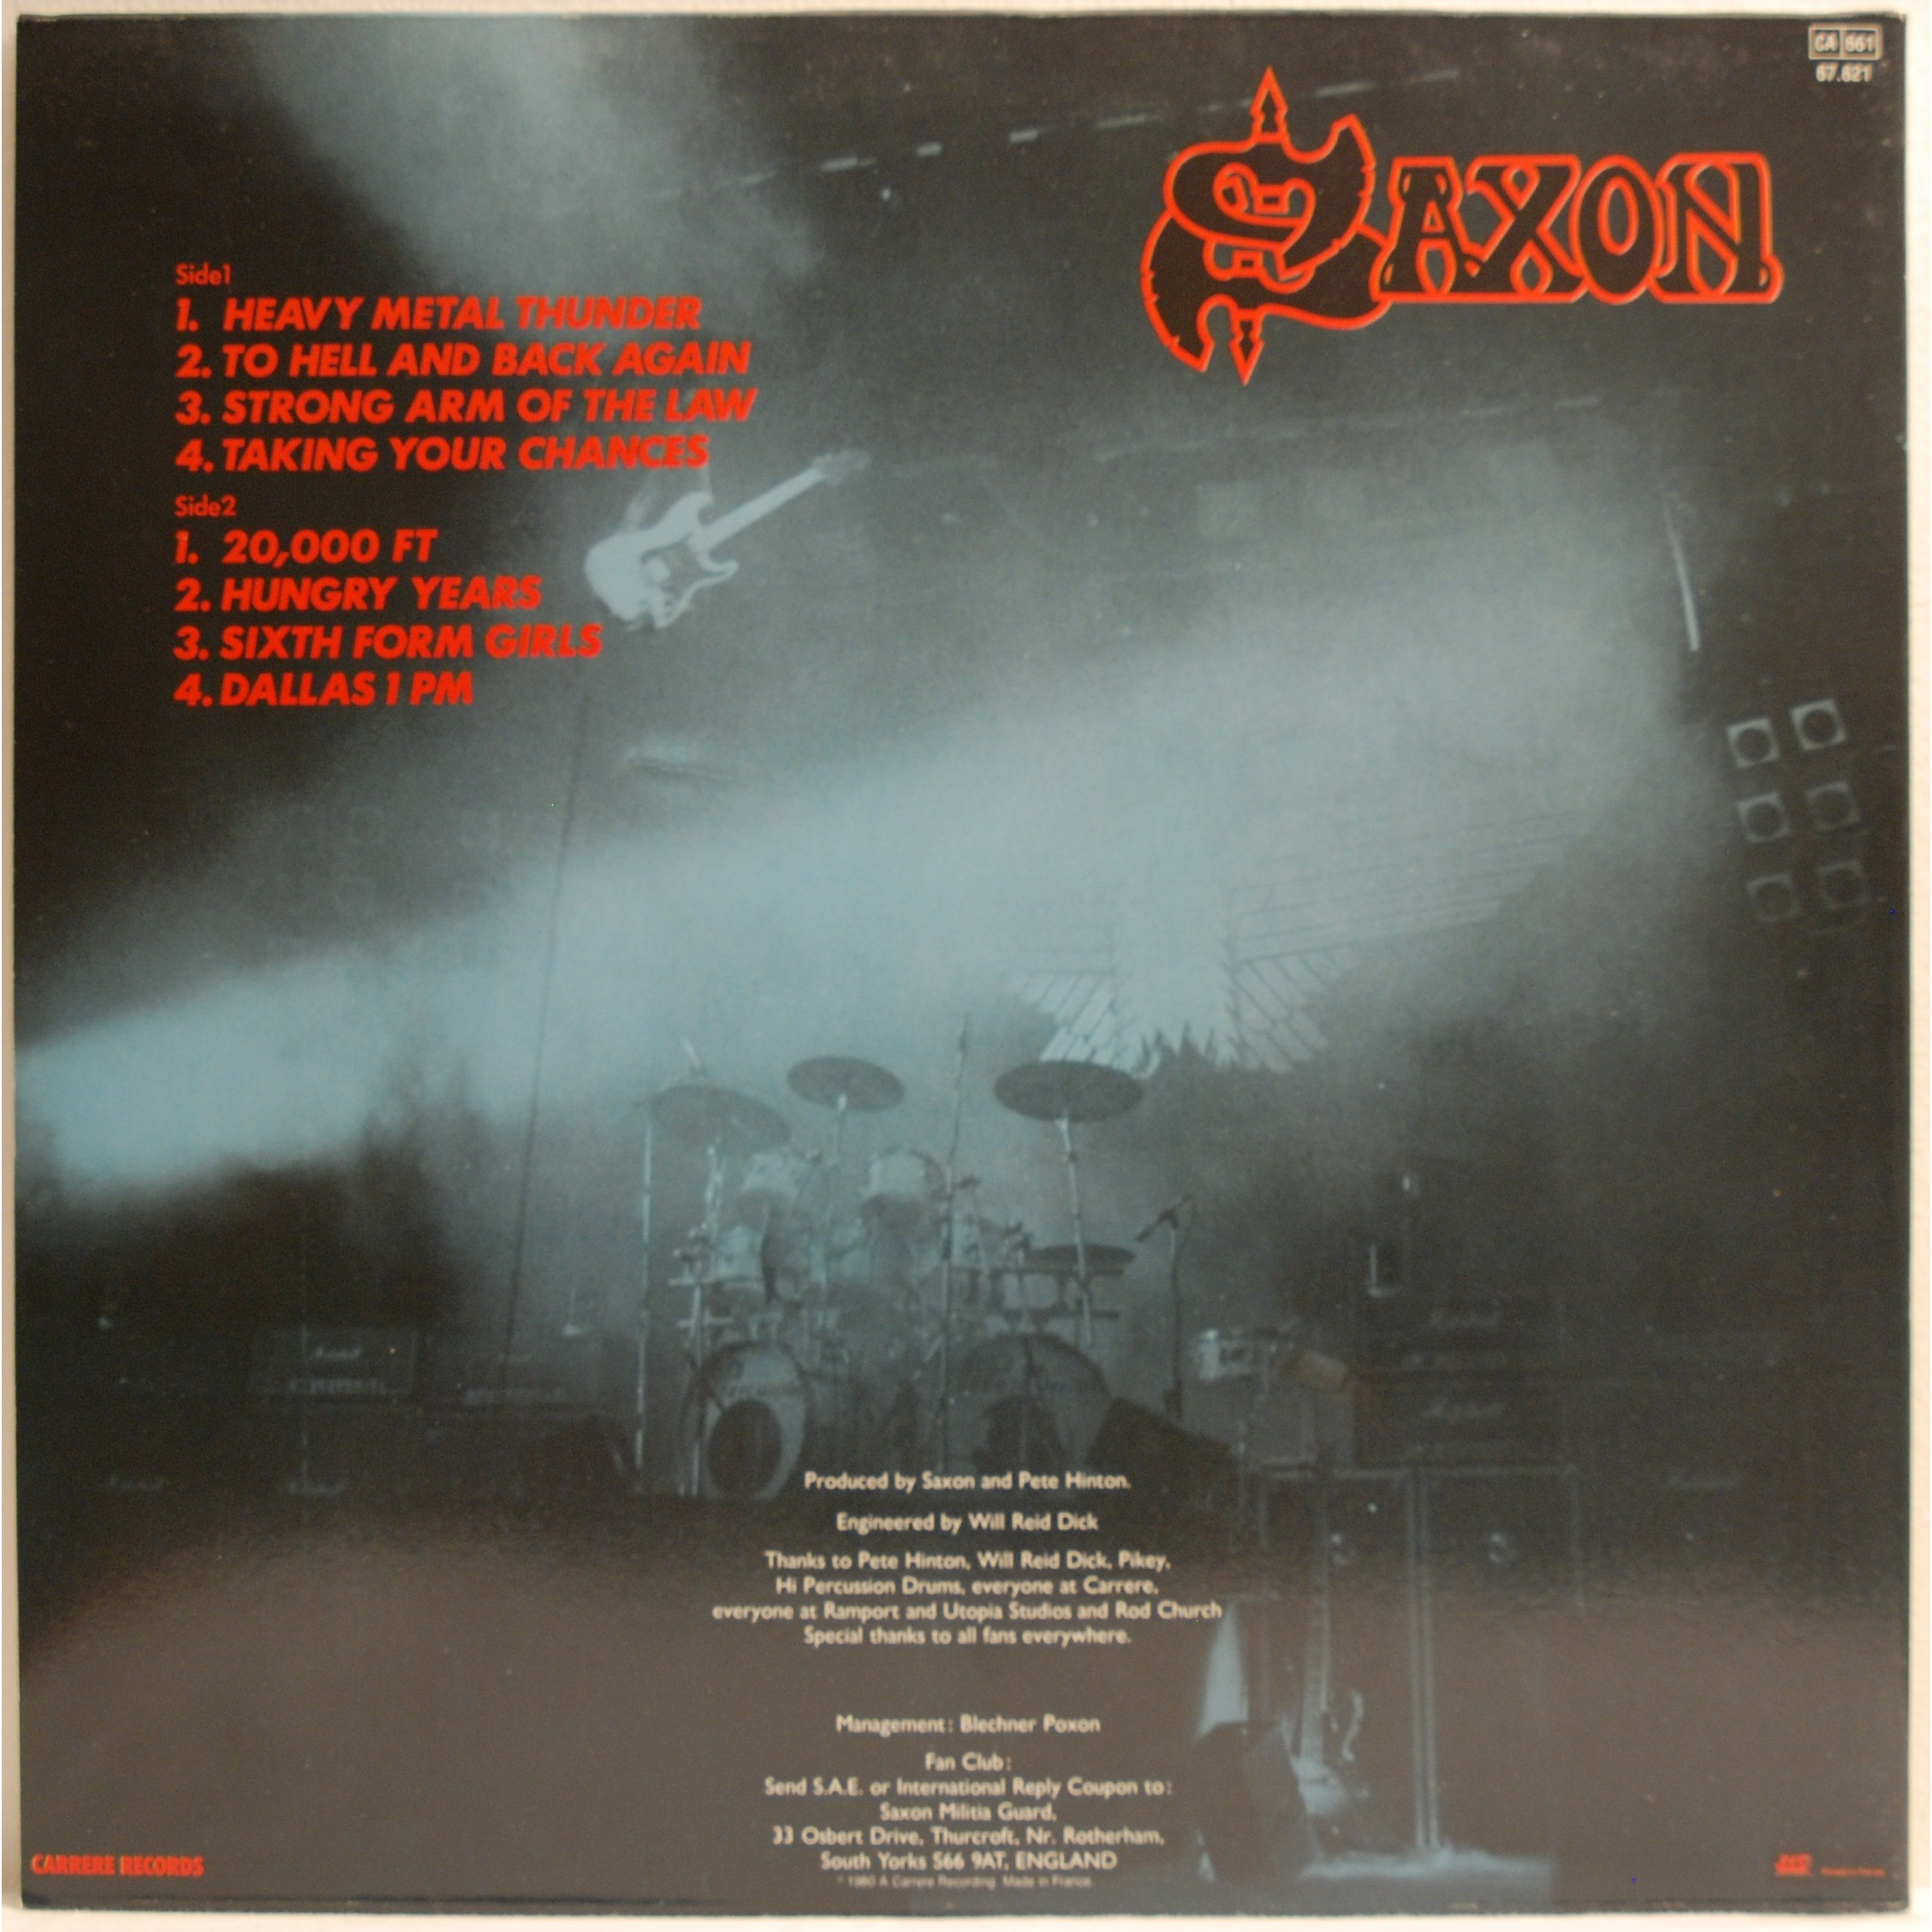 SAXON - Strong Arm Of The Law (1980)-[HEAVY METAL] 2933621293-2